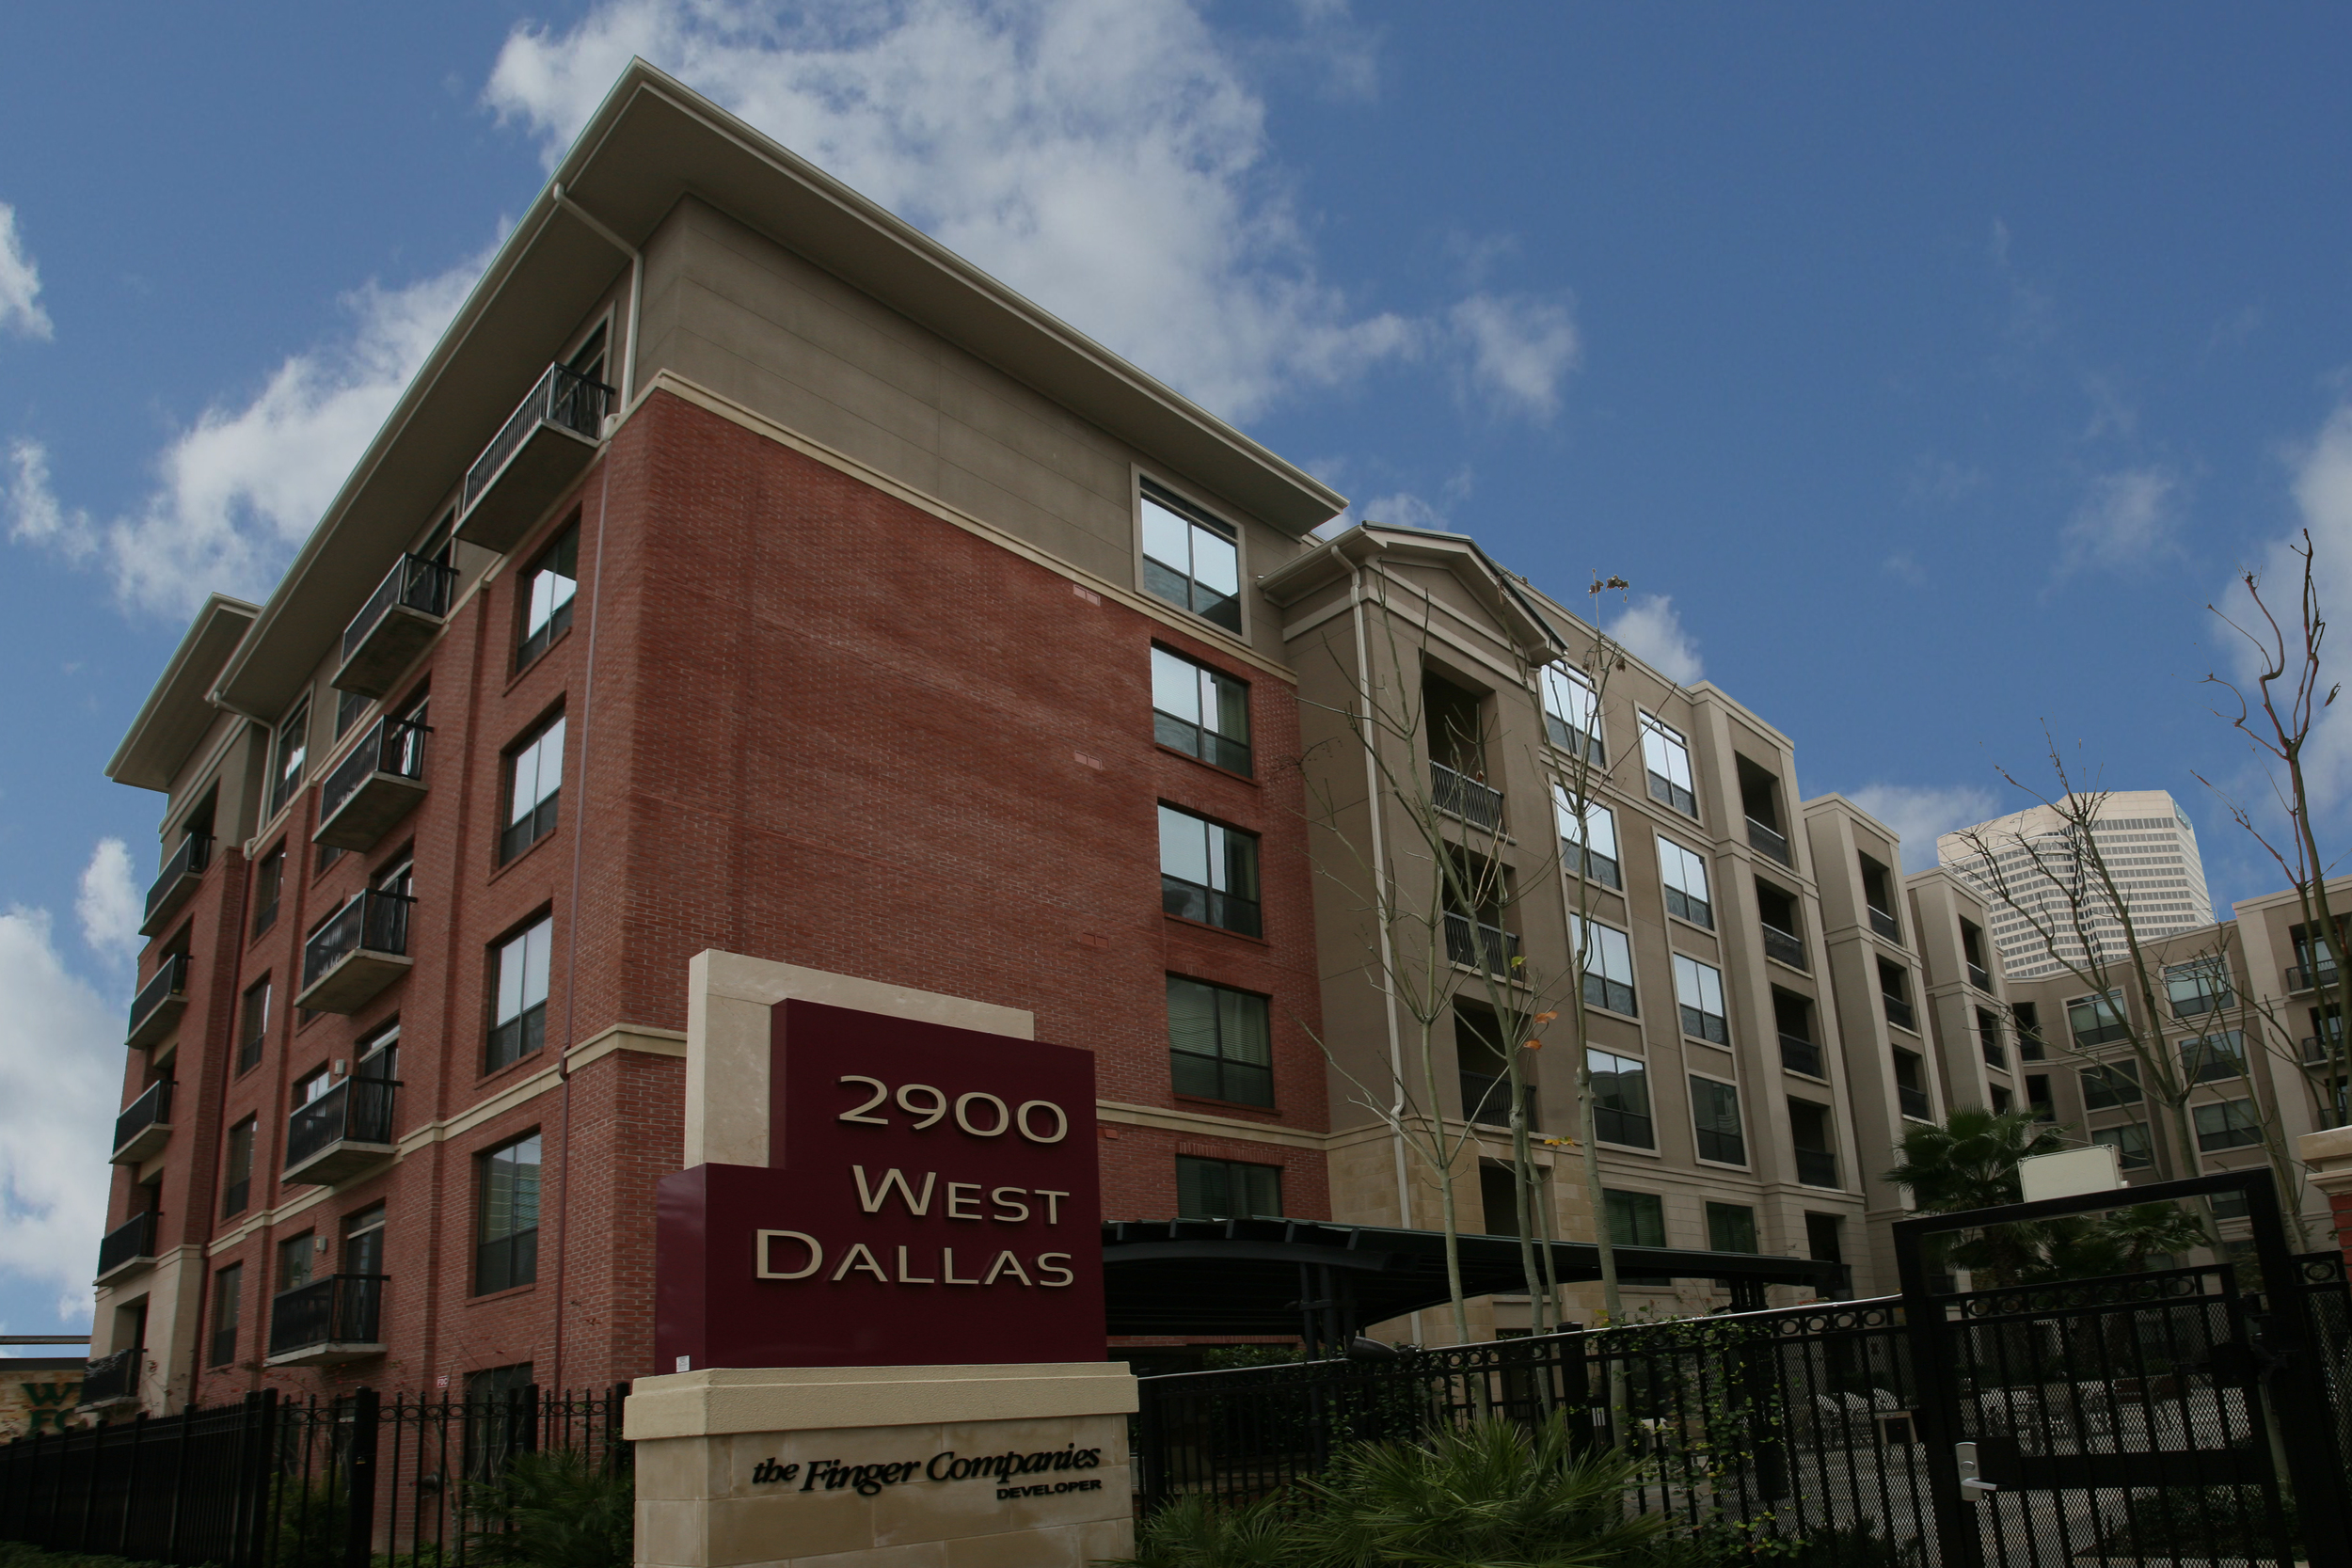 West Dallas Apartments. Project designed and managed by Oscar Valdez working at Haynes Whaley Associates